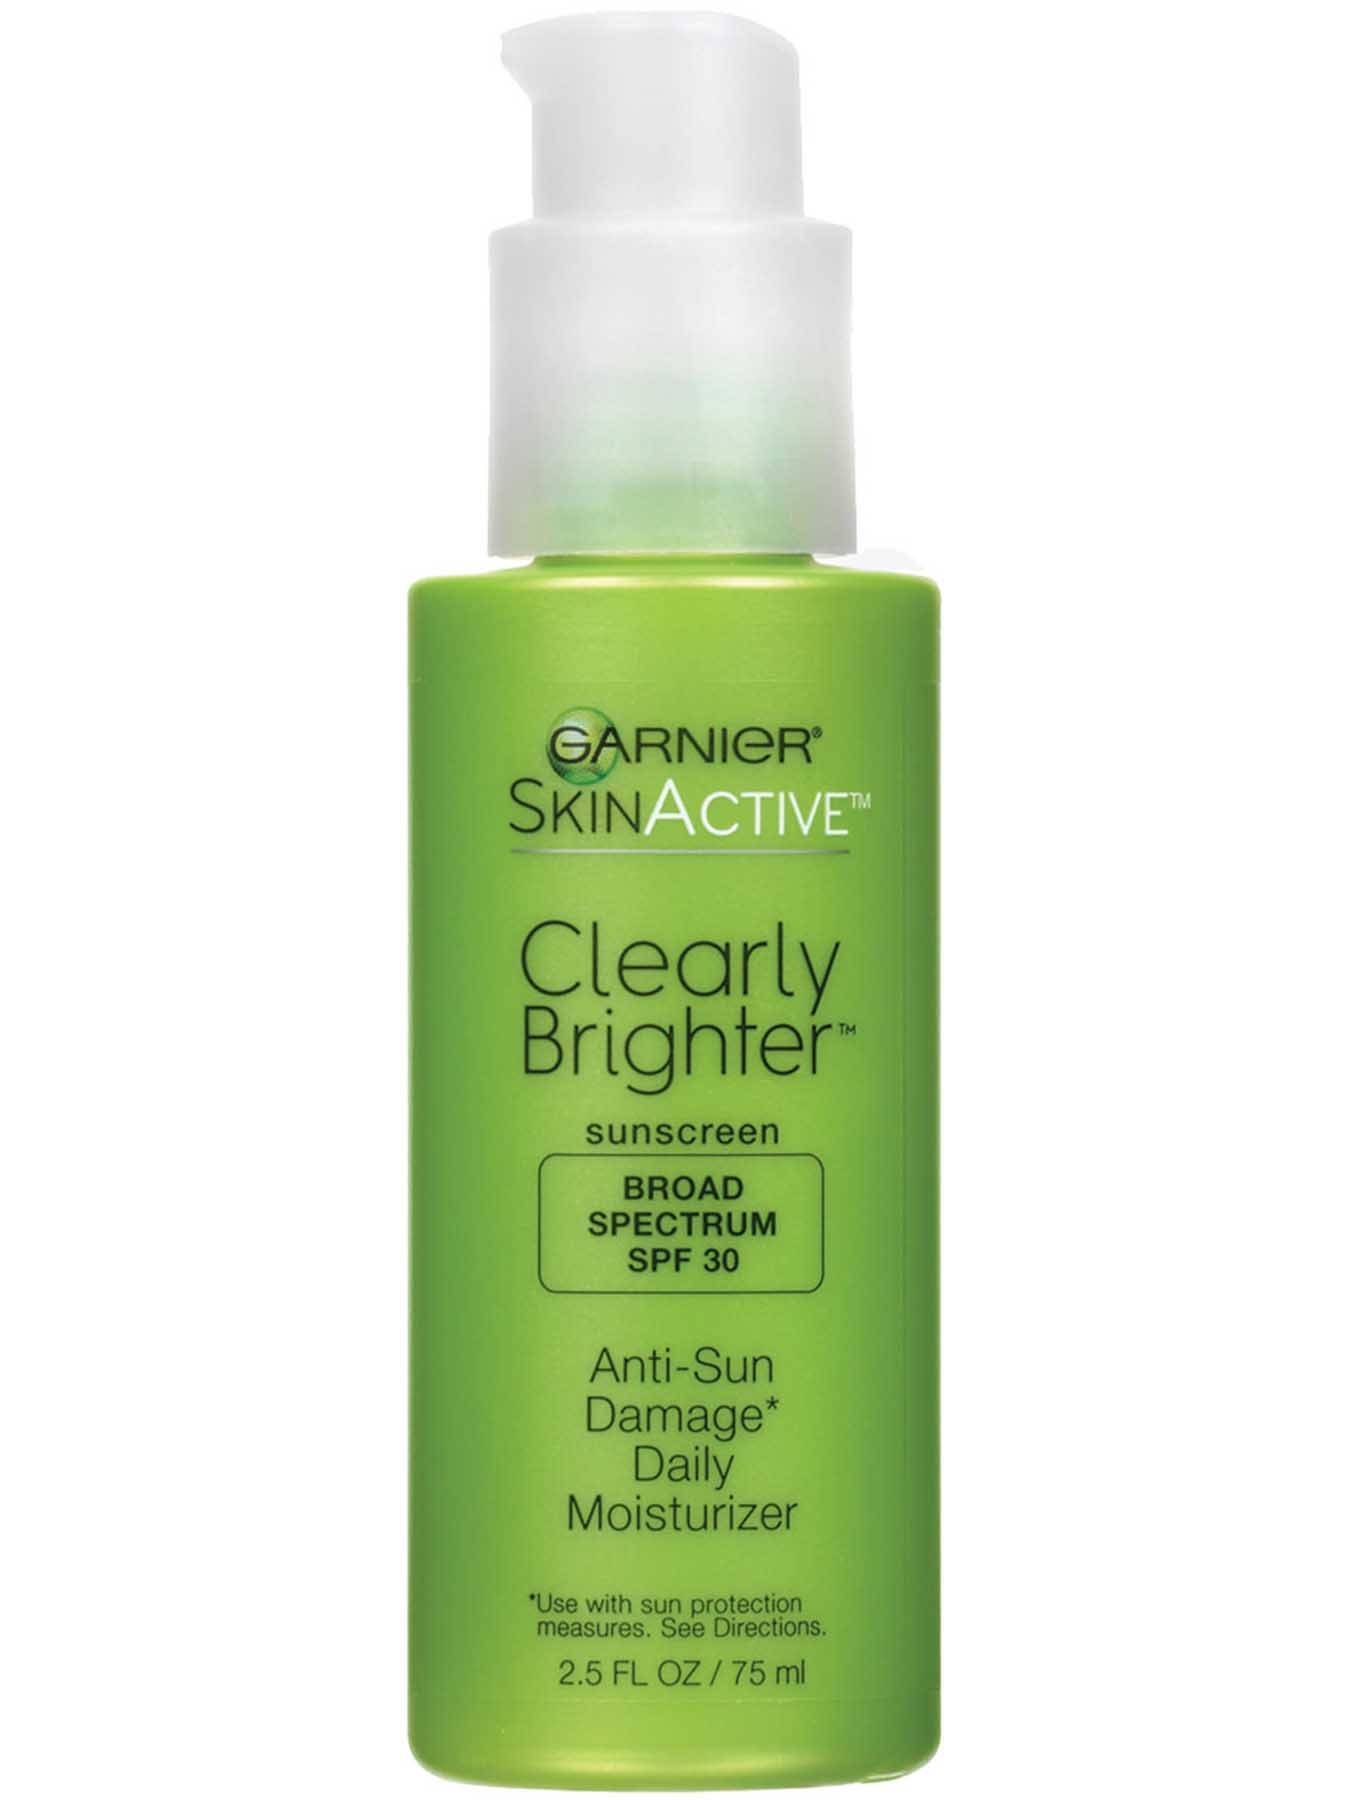 Front view of Clearly Brighter Broad Spectrum SPF 30 Anti-Sun Damage Daily Moisturizer.